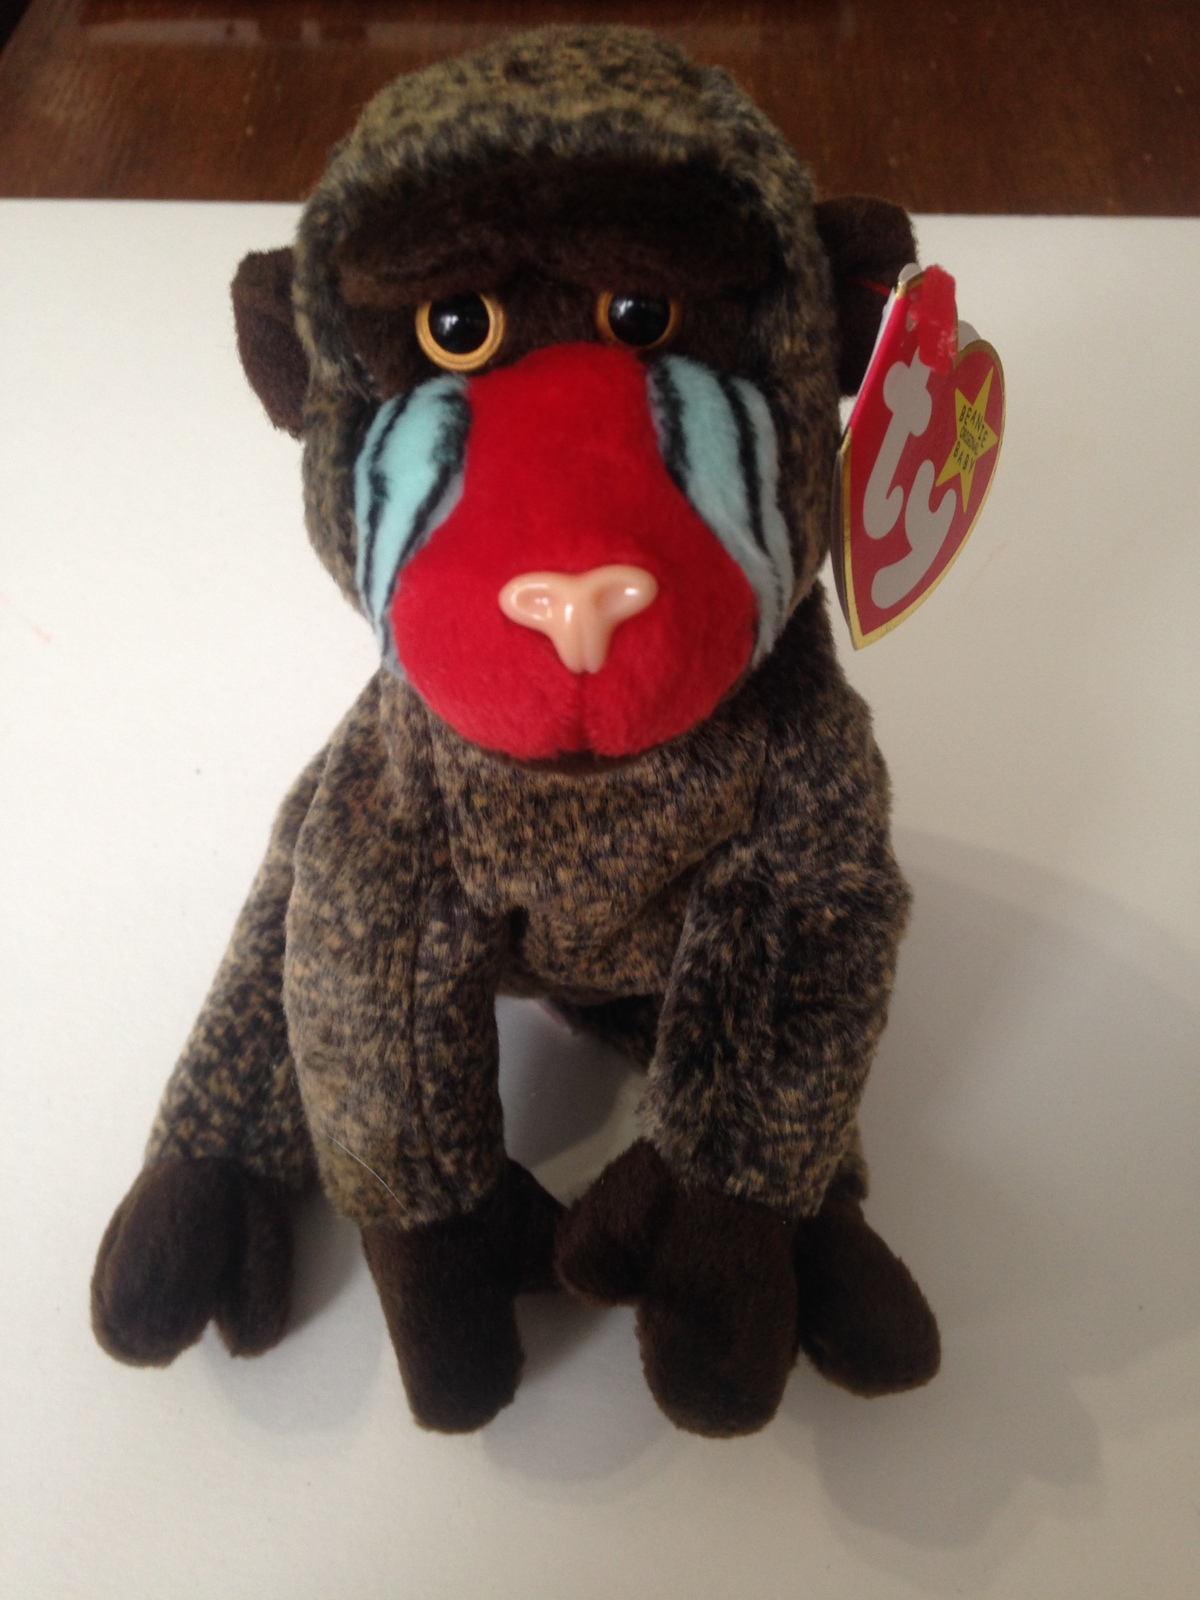 cfb4997bdcb Cheeks Beanie Baby Retired 1999 and 50 similar items. Img 5843